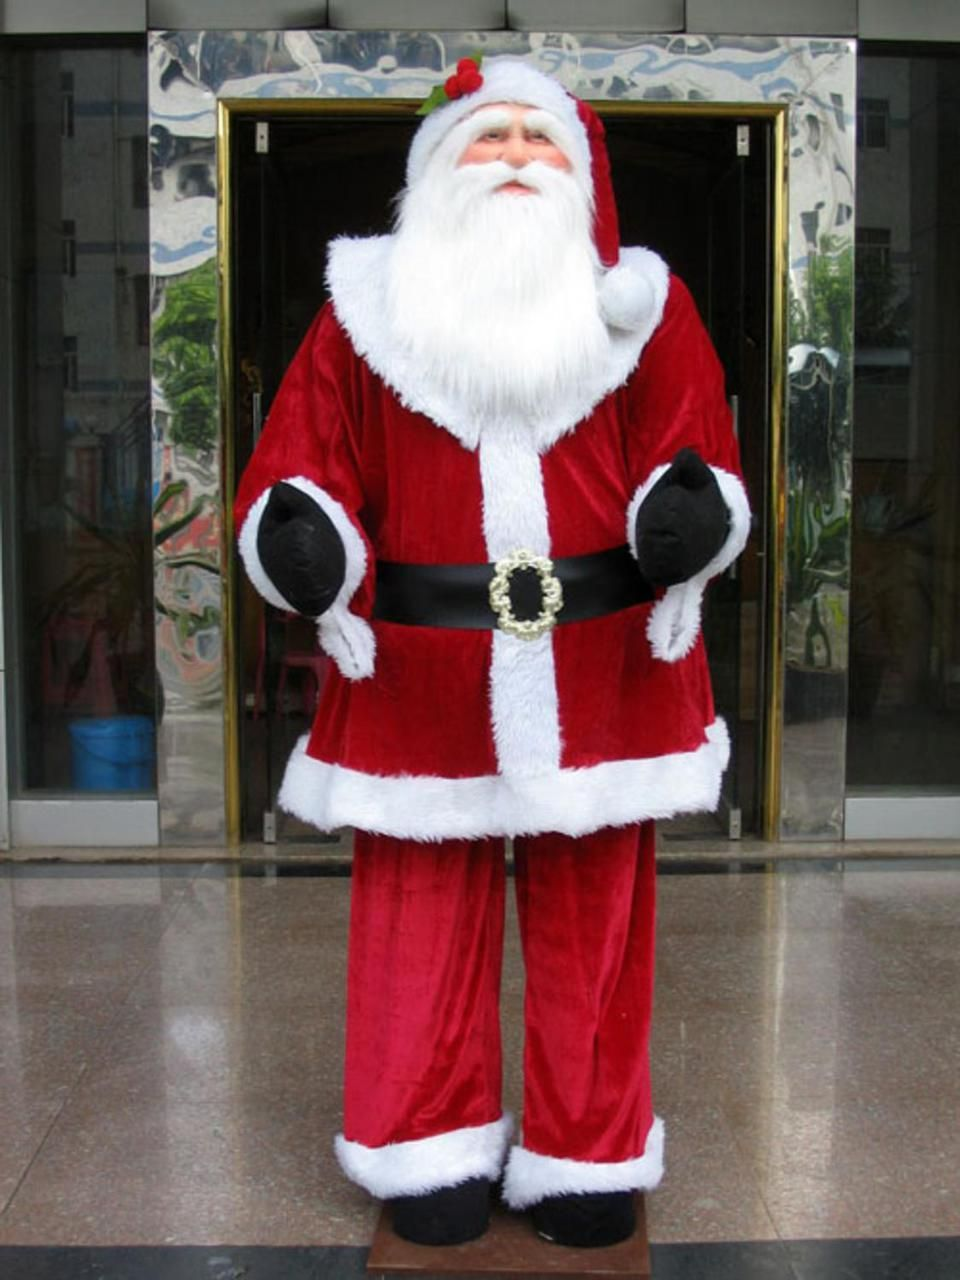 Huge 6 Foot Life Size Decorative Plush Santa Claus Sitting Or Standing 7580006 Christmascentral Plush Santa Claus Dancing Santa Santa Claus Figure